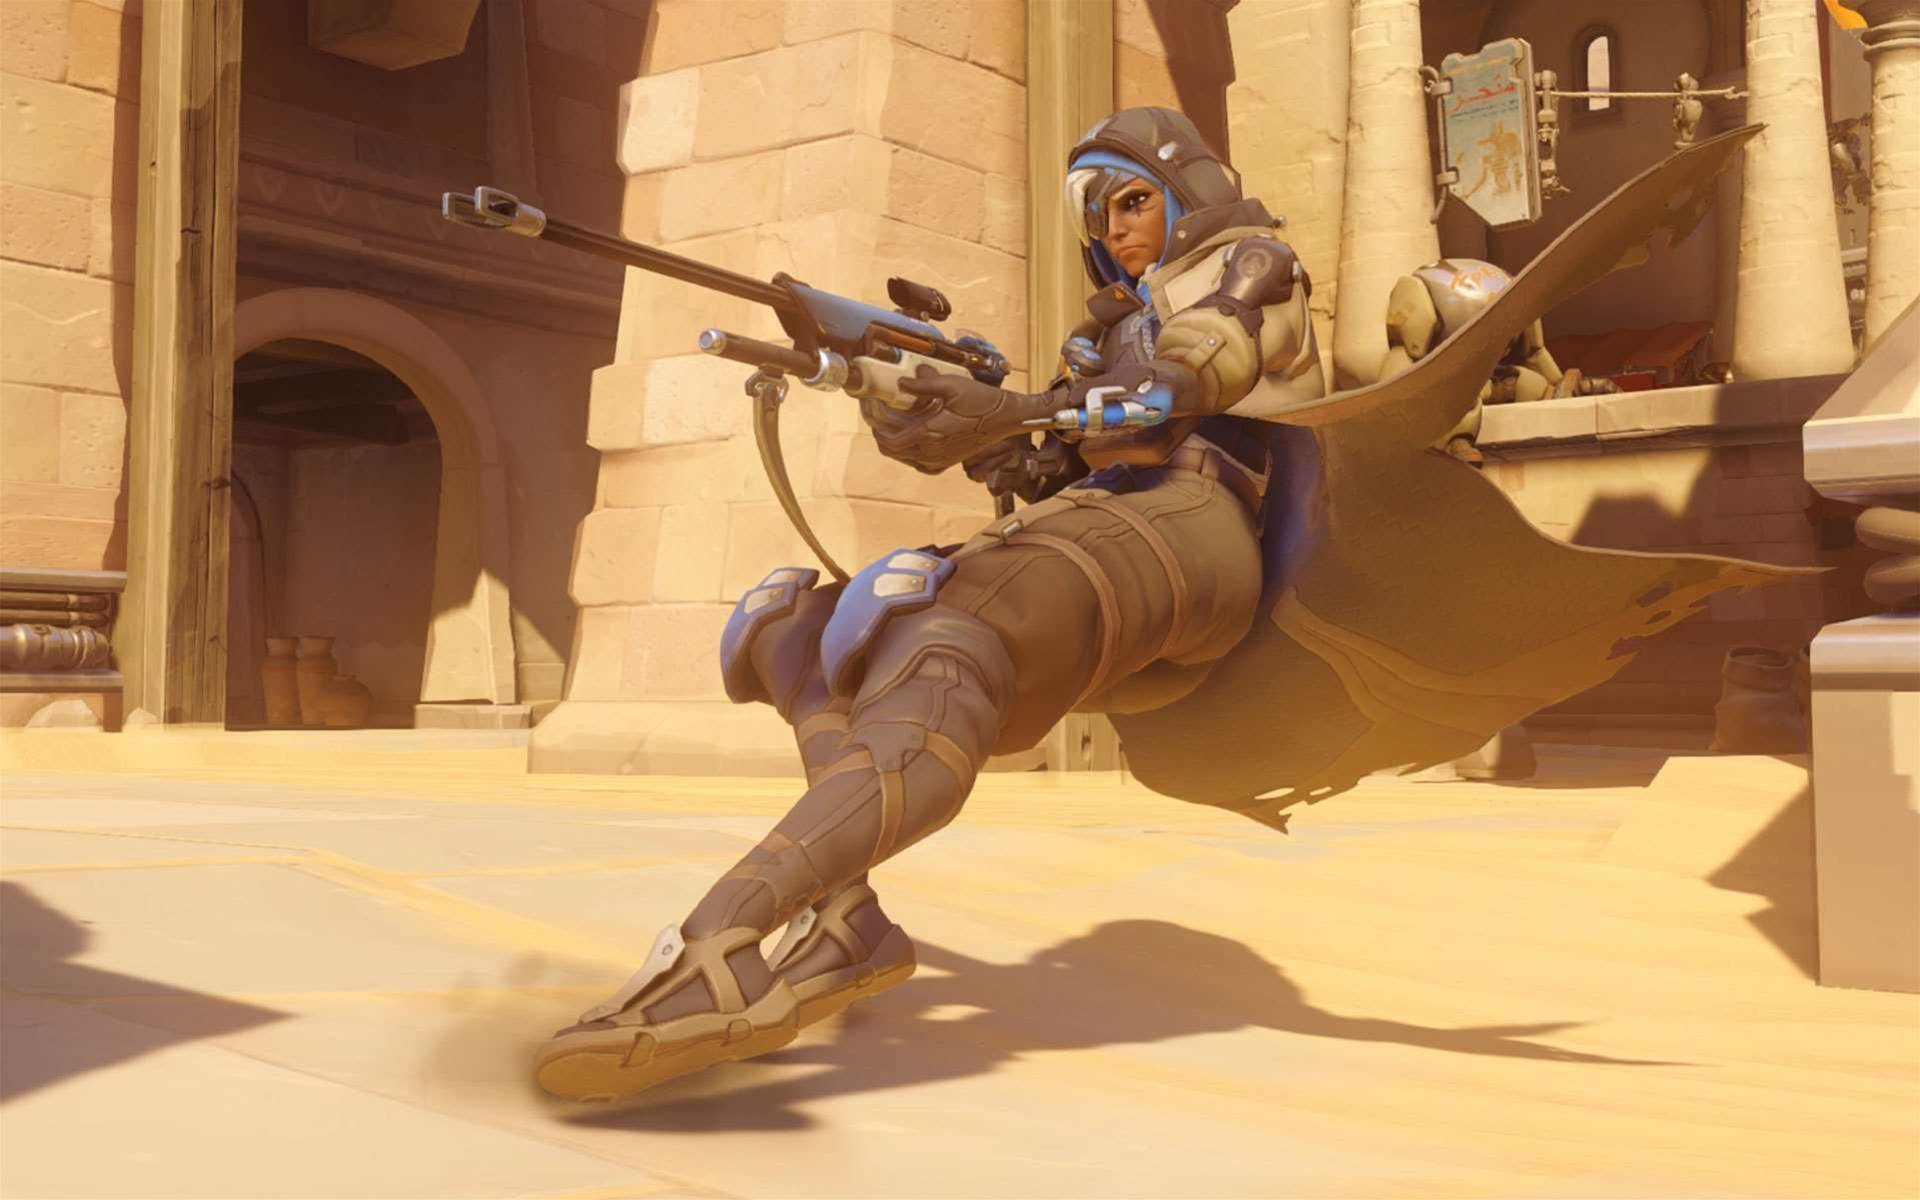 New Overwatch patch being tested, included new support character, Ana